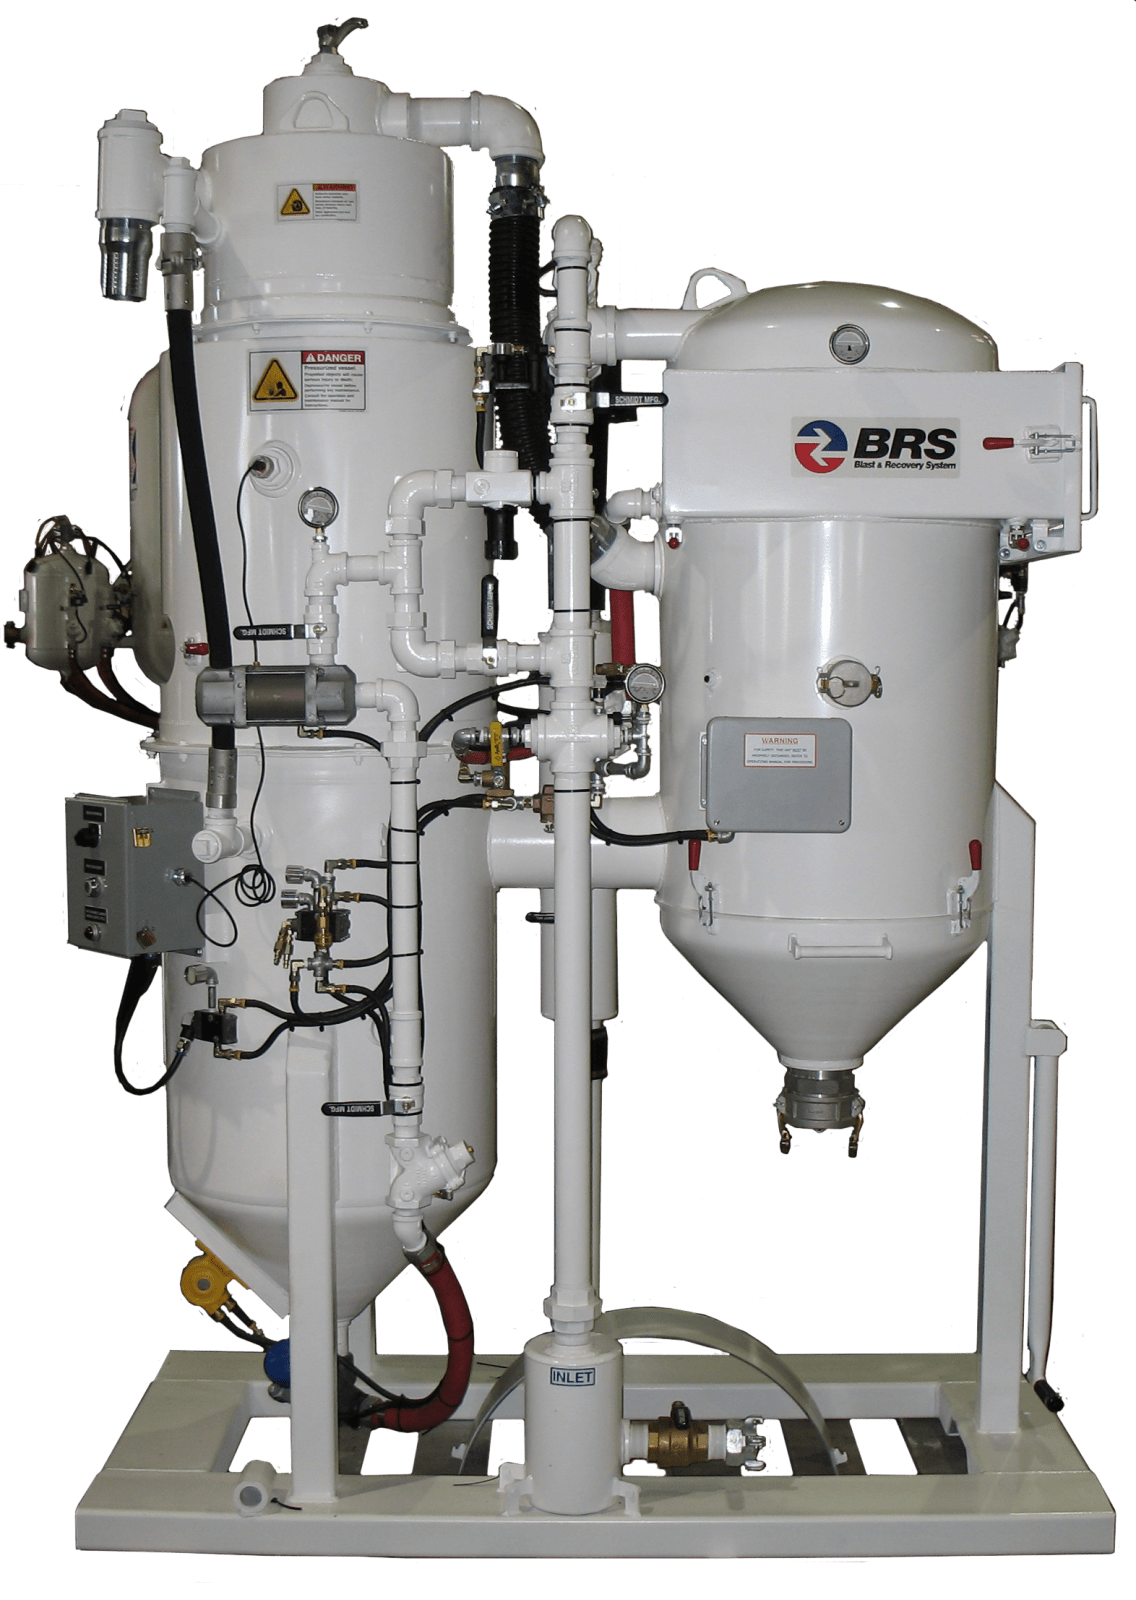 schmidt blast and recovery system